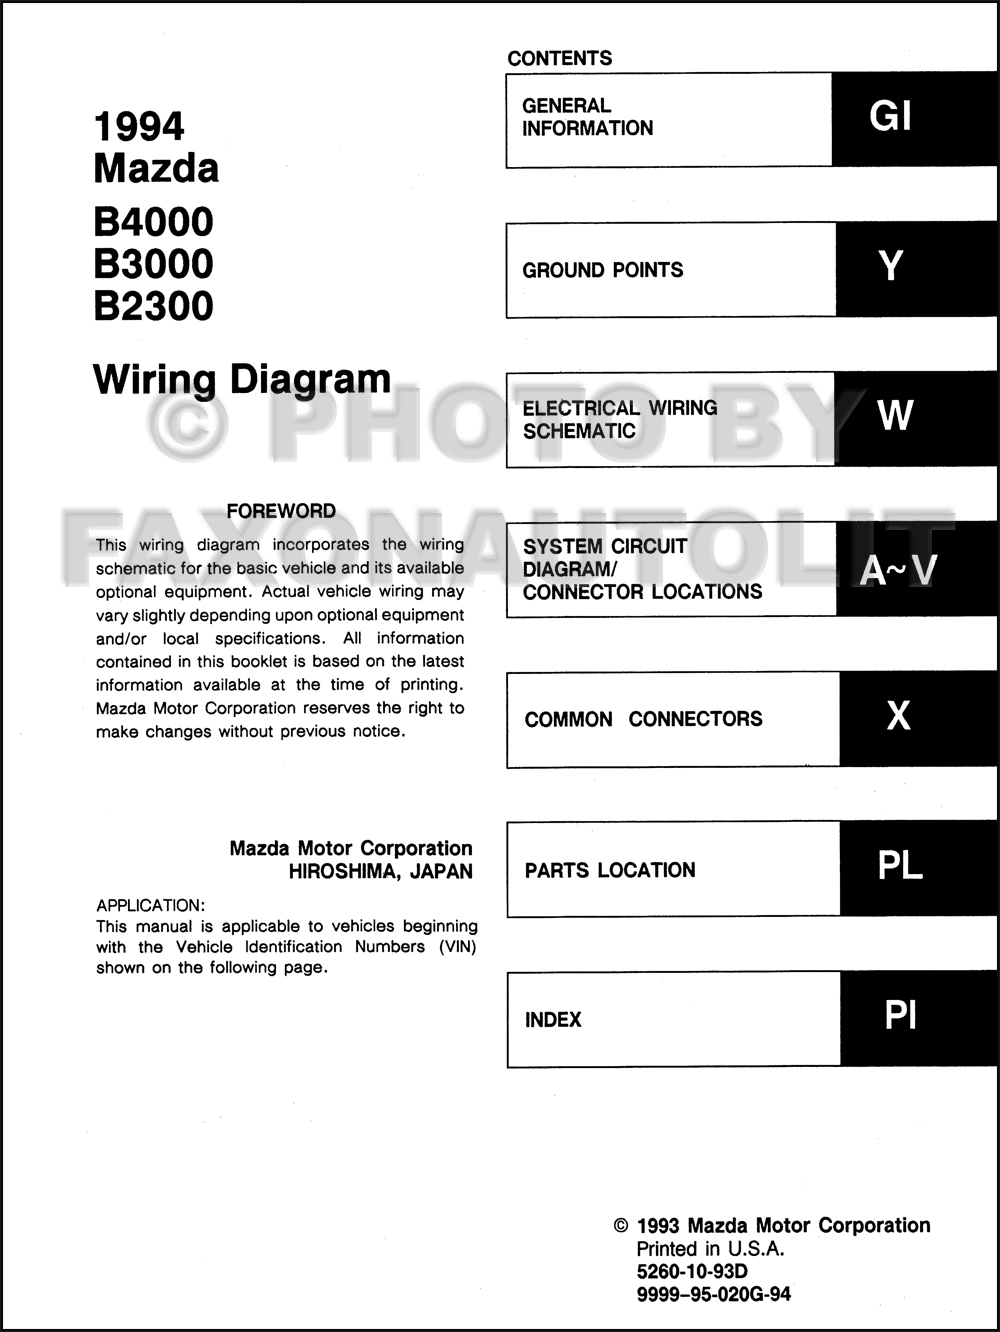 1994MazdaB4000B3000B23000OWD TOC 1994 mazda b4000 b3000 b2300 pickup truck wiring diagram manual mazda b4000 fuse box diagram at bayanpartner.co